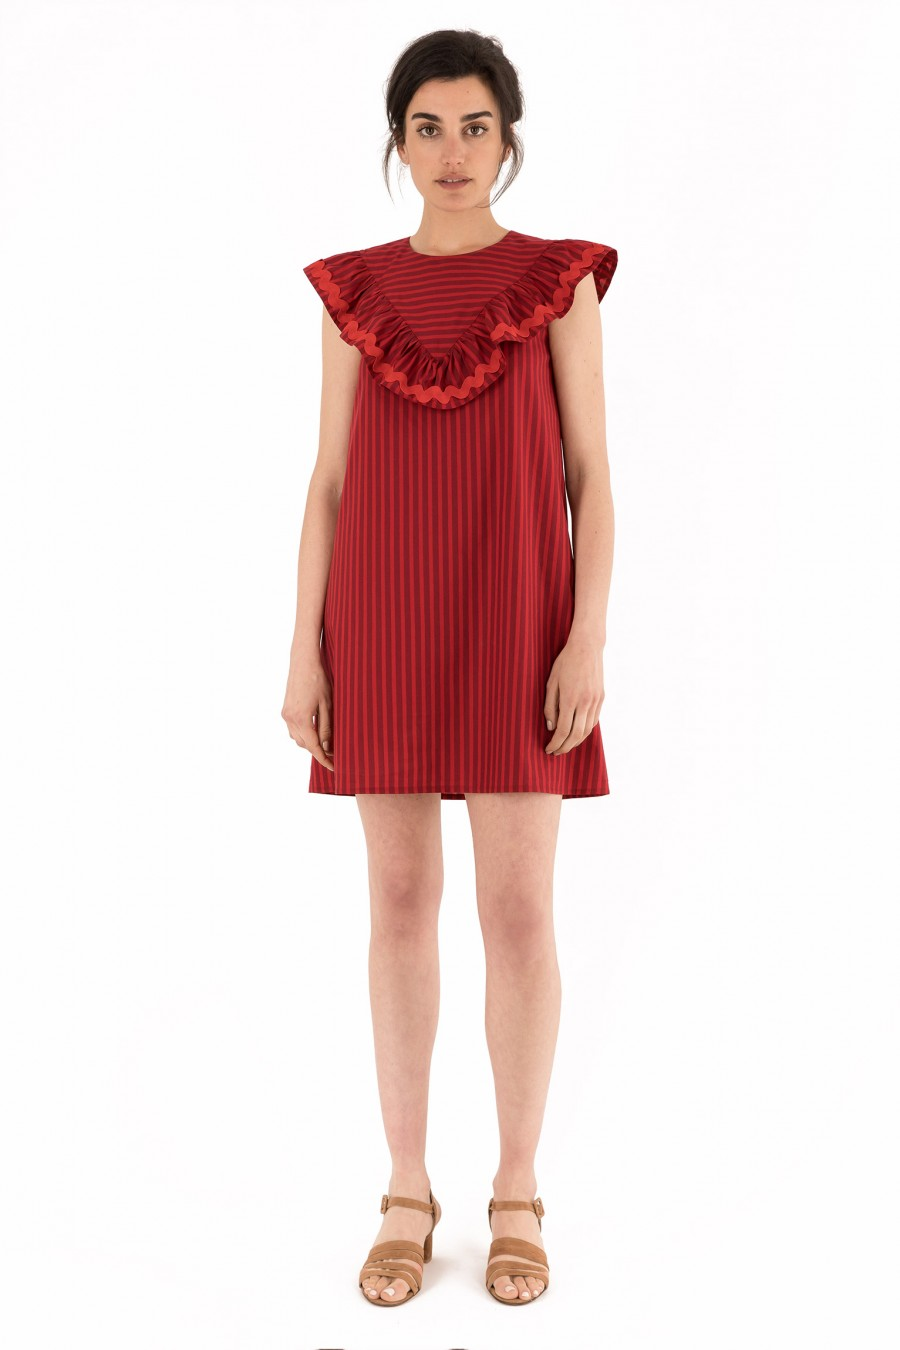 Dress with red and burgundy stripes